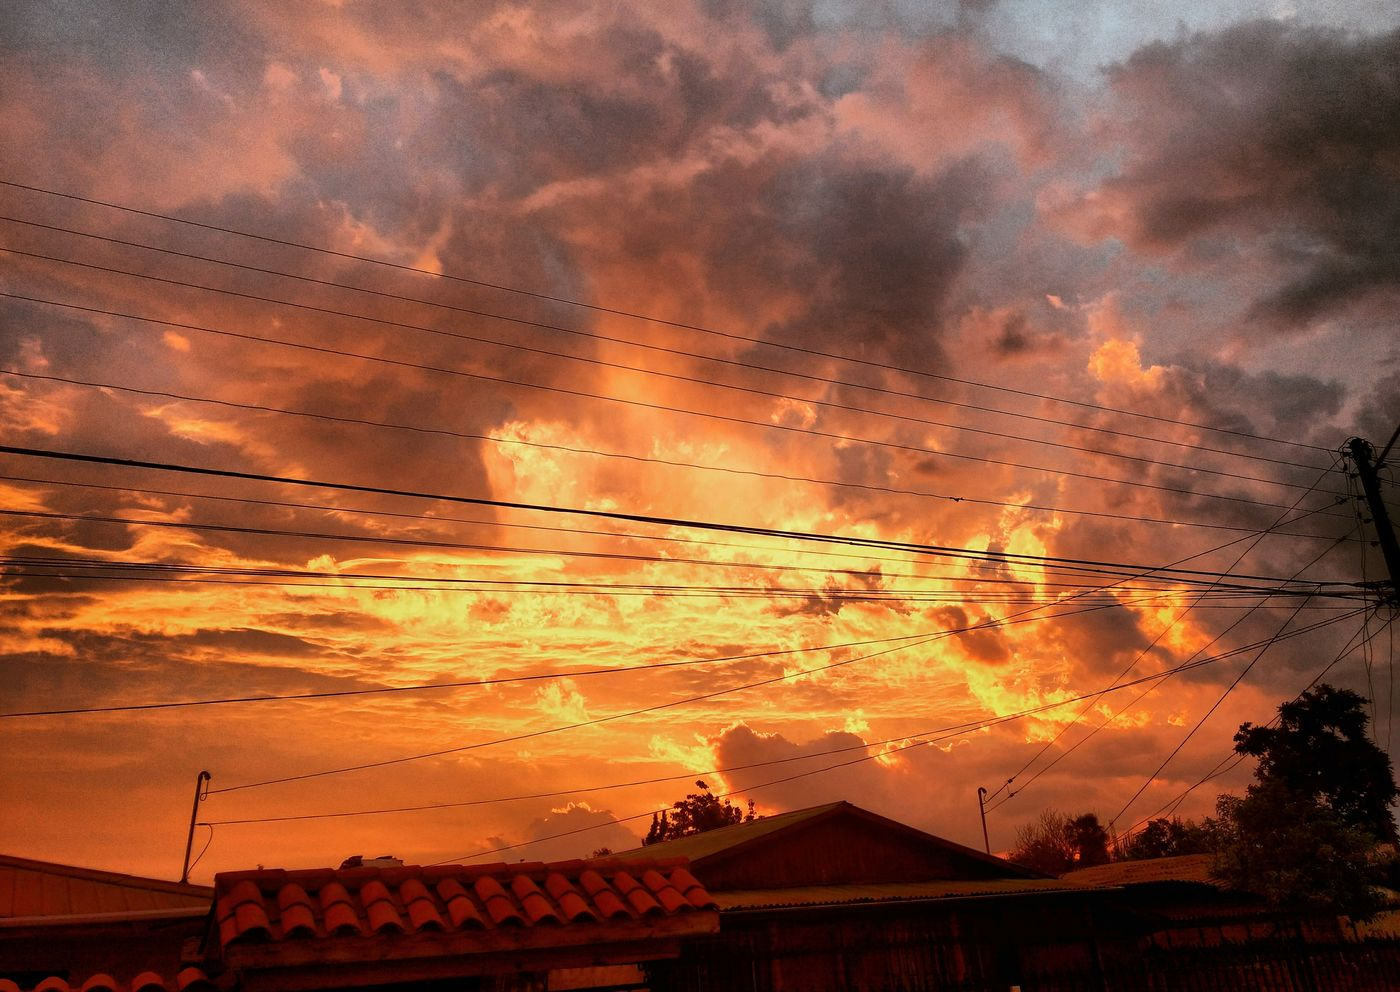 Sunset Orange Color Dramatic Sky Cloud - Sky Red Outdoors Sun Sky Beauty In Nature Landscape Nature Gold Colored Wonferful Sky ☁ Great Outdoors Beauty In Nature Cielo Fire In The Sky Captura Fuego En El Cielo Hermoso Atardecer